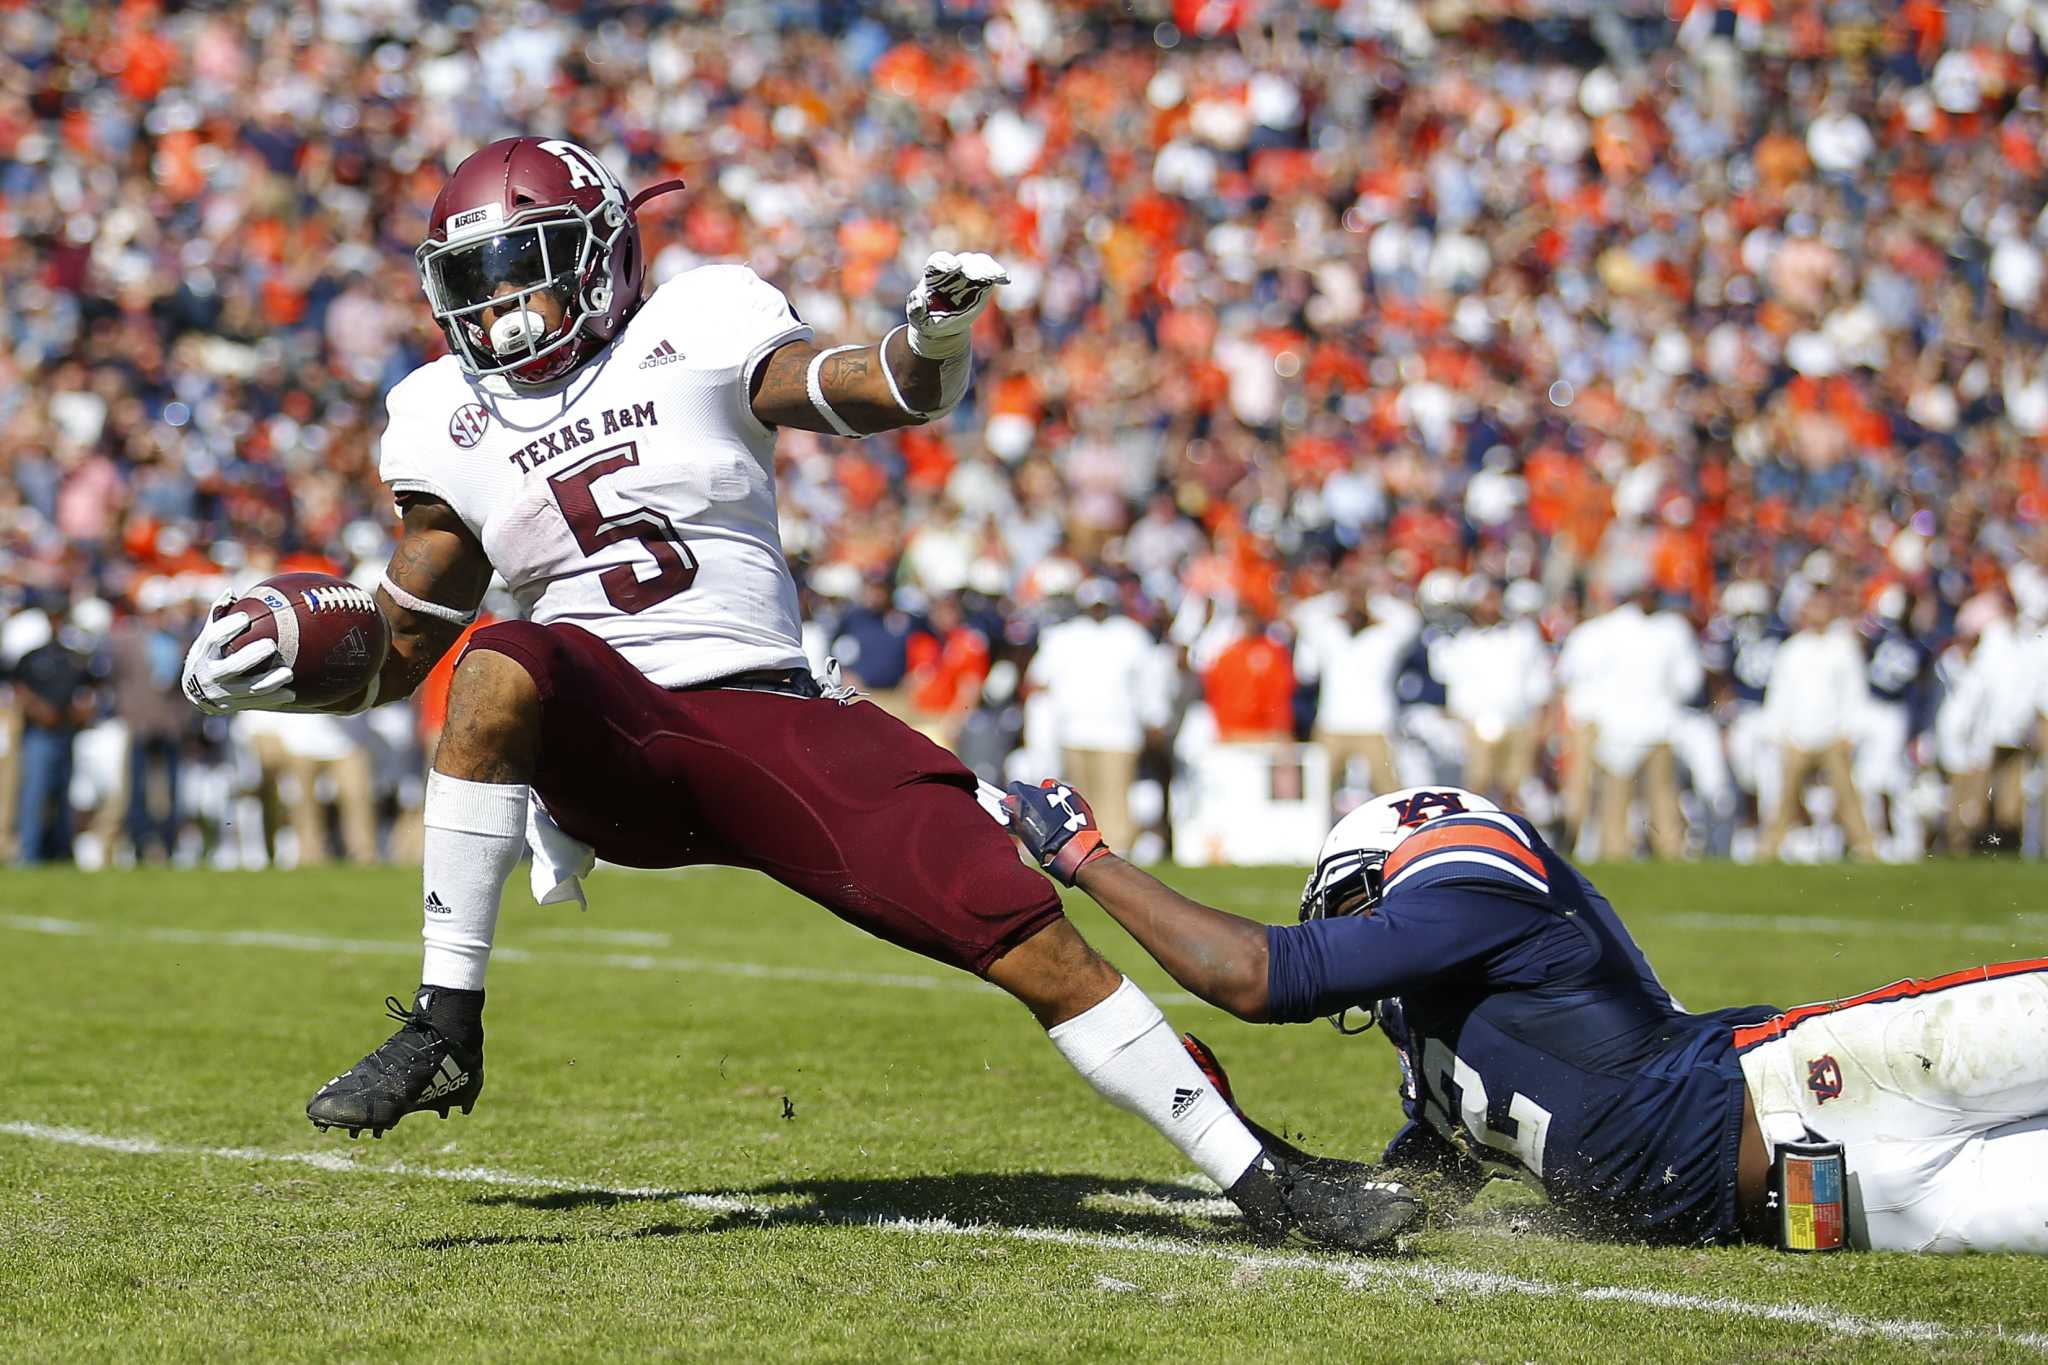 Texas A&M's pro prospects continue Aggies trend of ... playing in bowl games